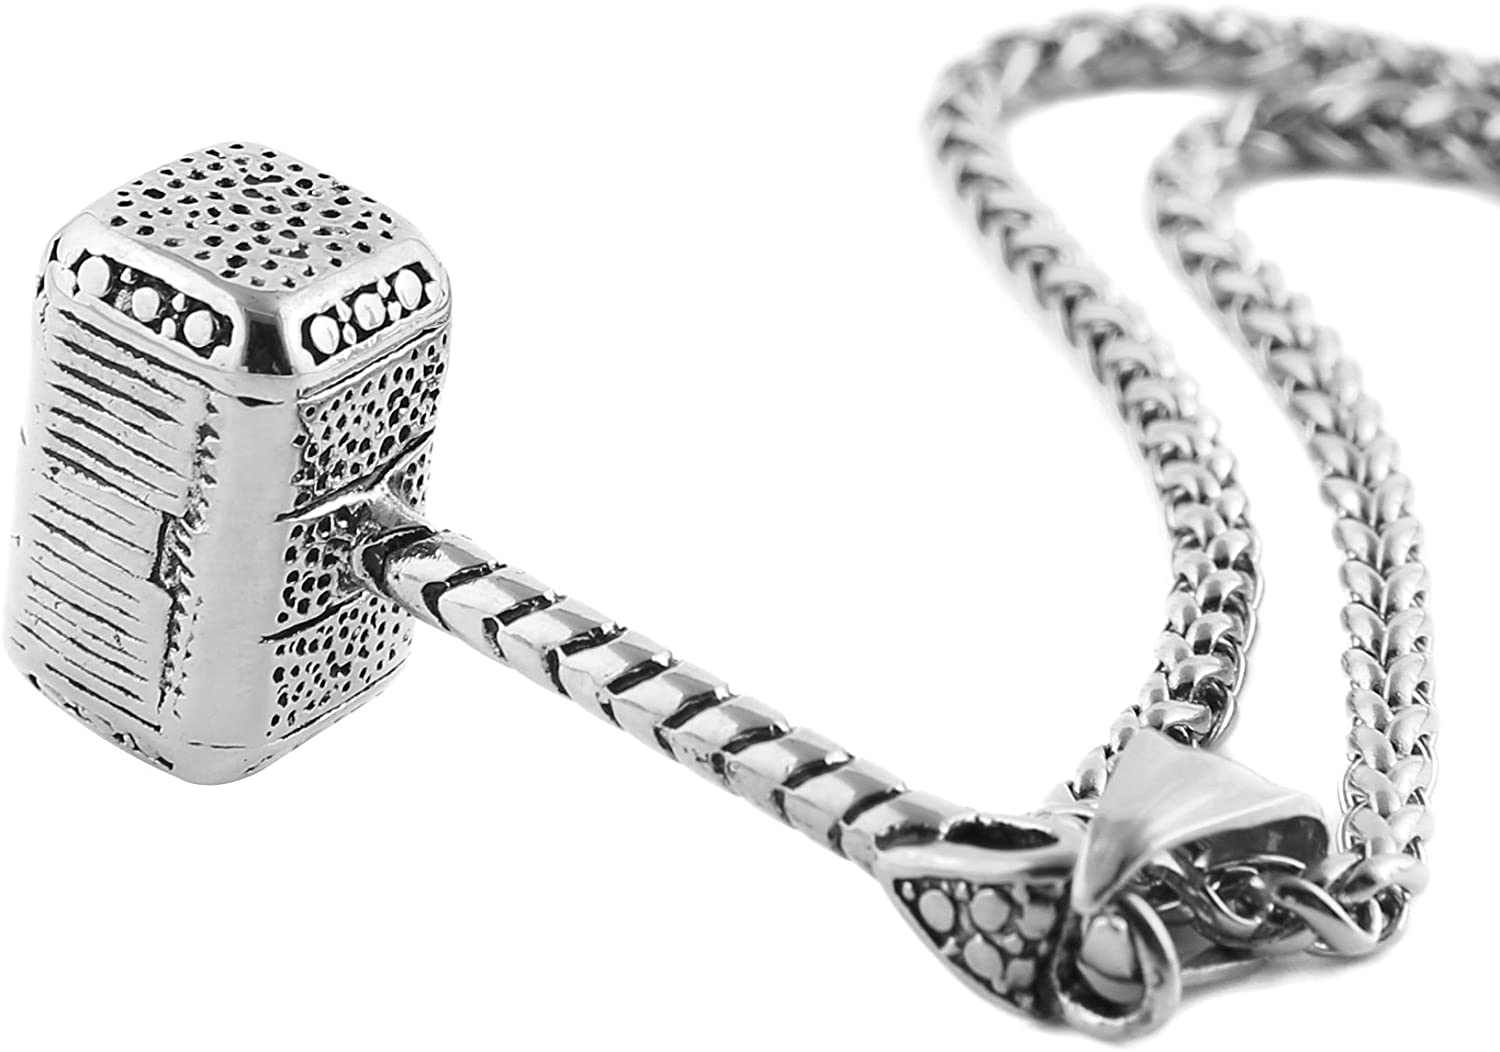 HZMAN Thor Hammer Stainless Steel Necklace for Men and Women Hammer Pendant Necklace 22+2 Inch Chain